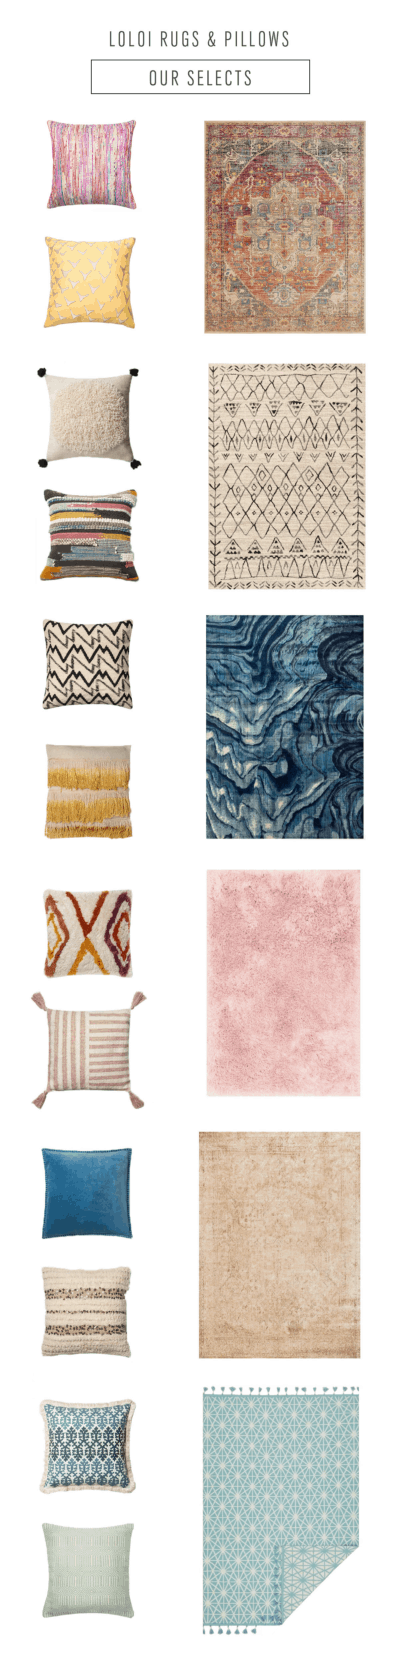 our favorite loloi rugs u0026 pillows this fall by top houston lifestyle blogger ashley rose of